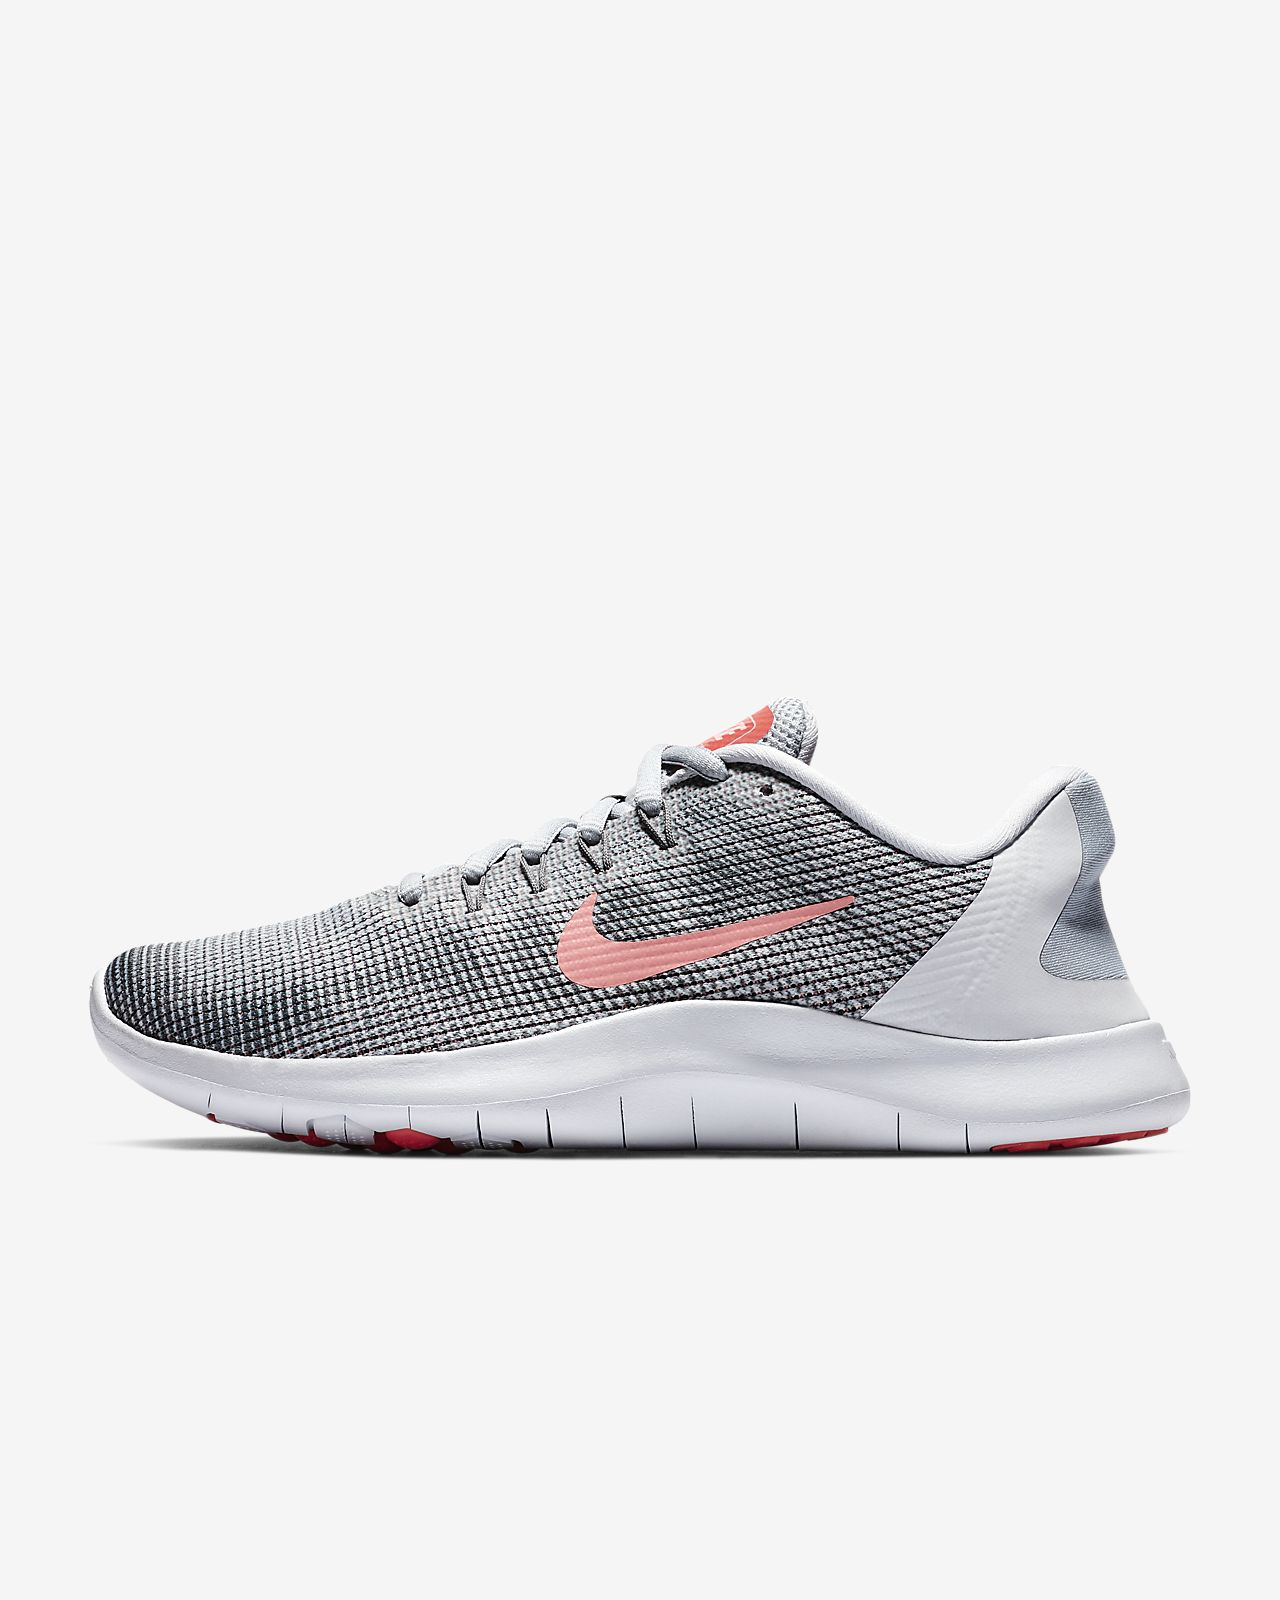 new arrivals dd3ca b869a Women s Running Shoe. Nike Flex RN 2018